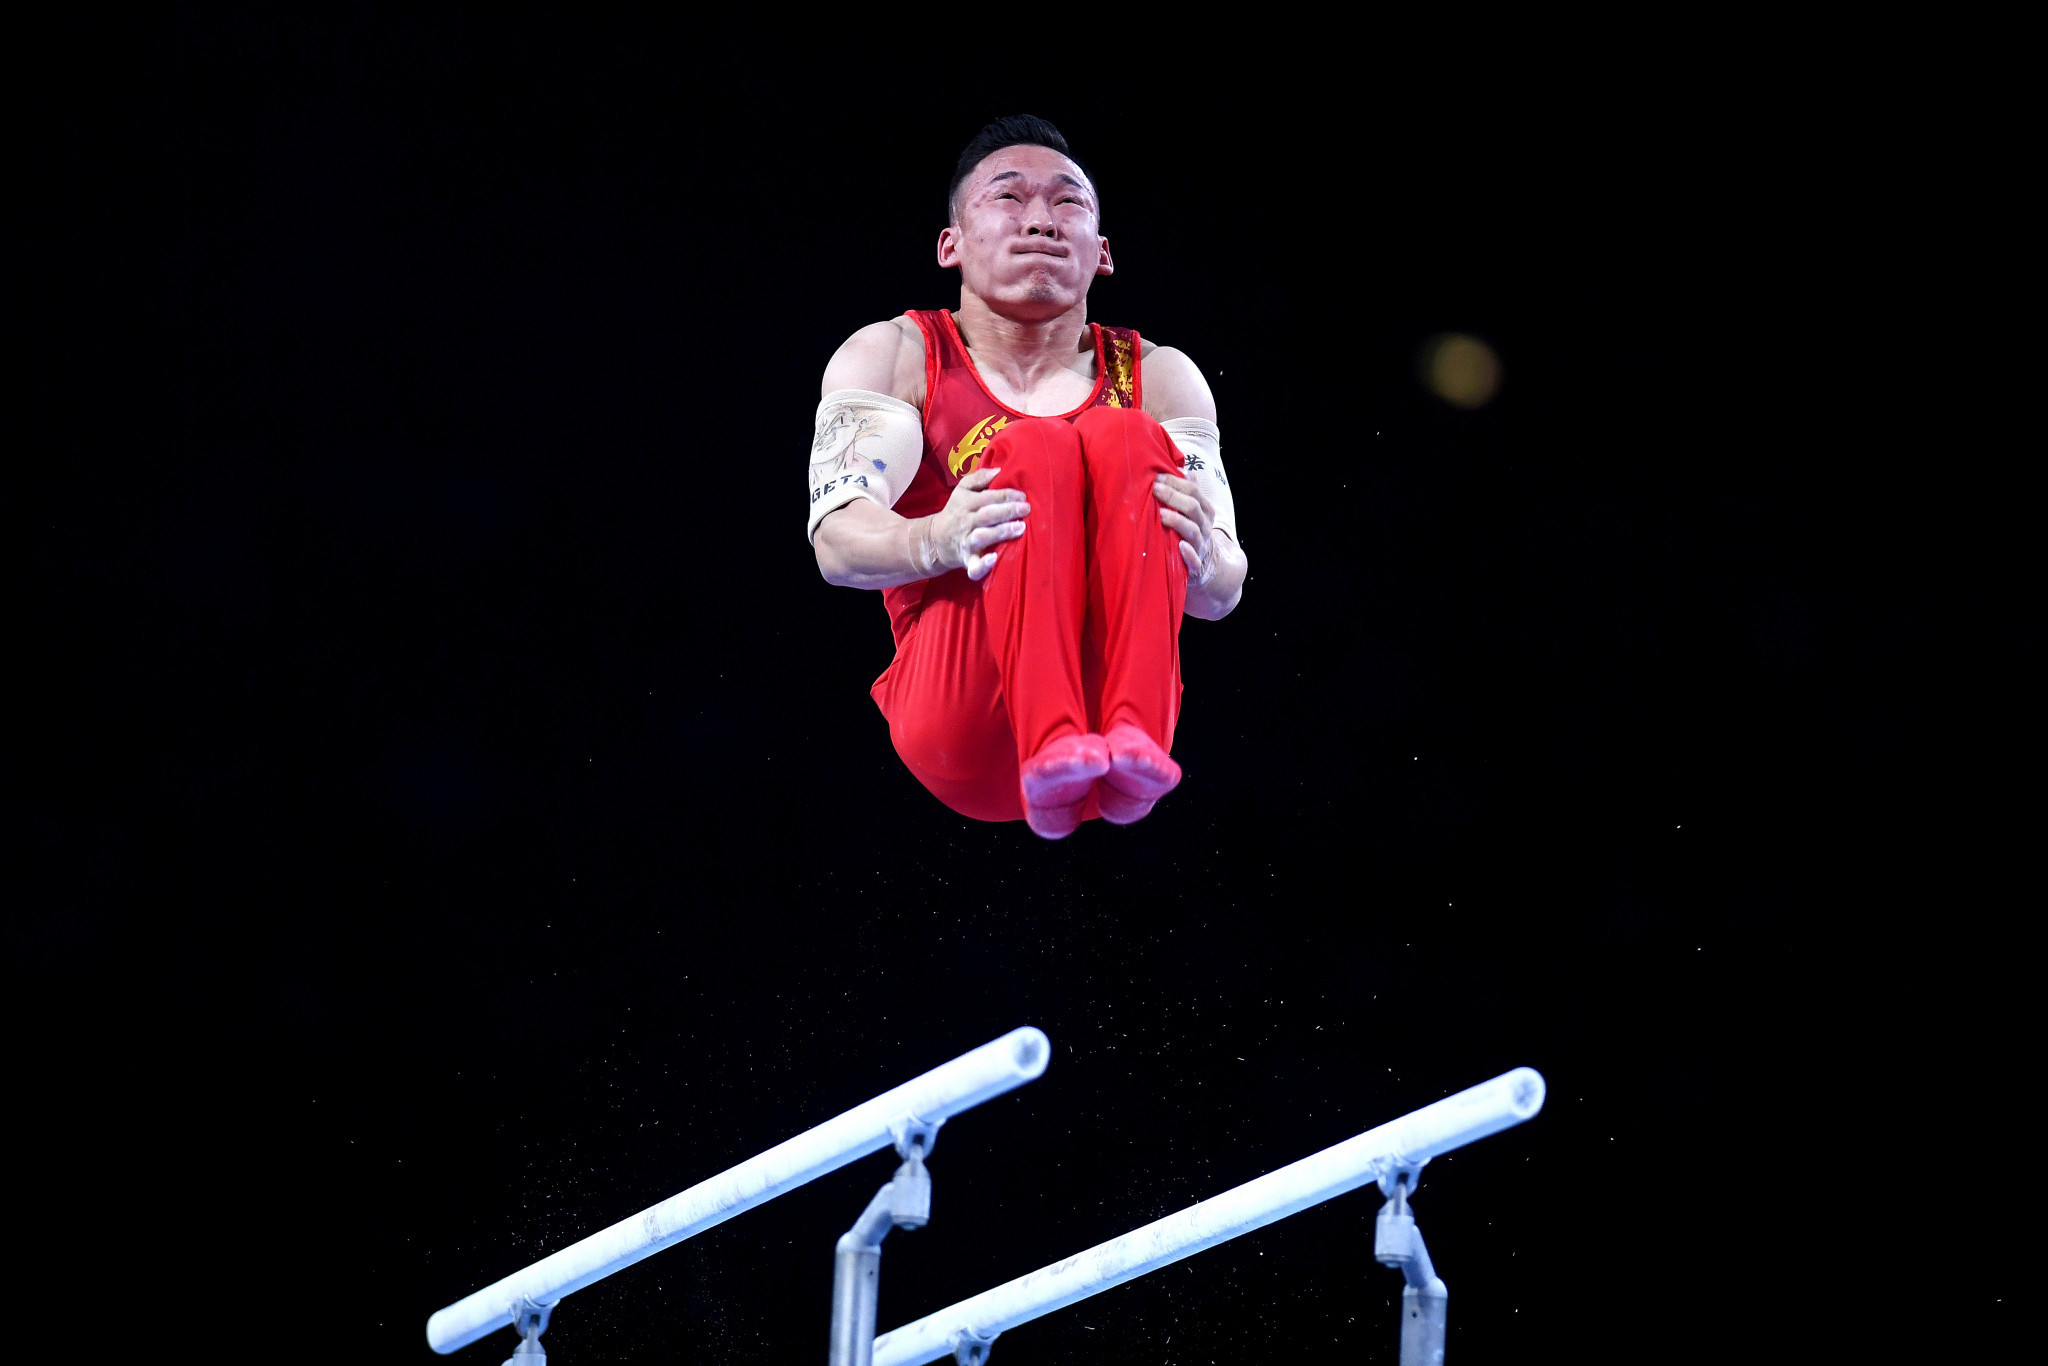 China had named a 12-strong team for the apparatus event in Melbourne ©Getty Images